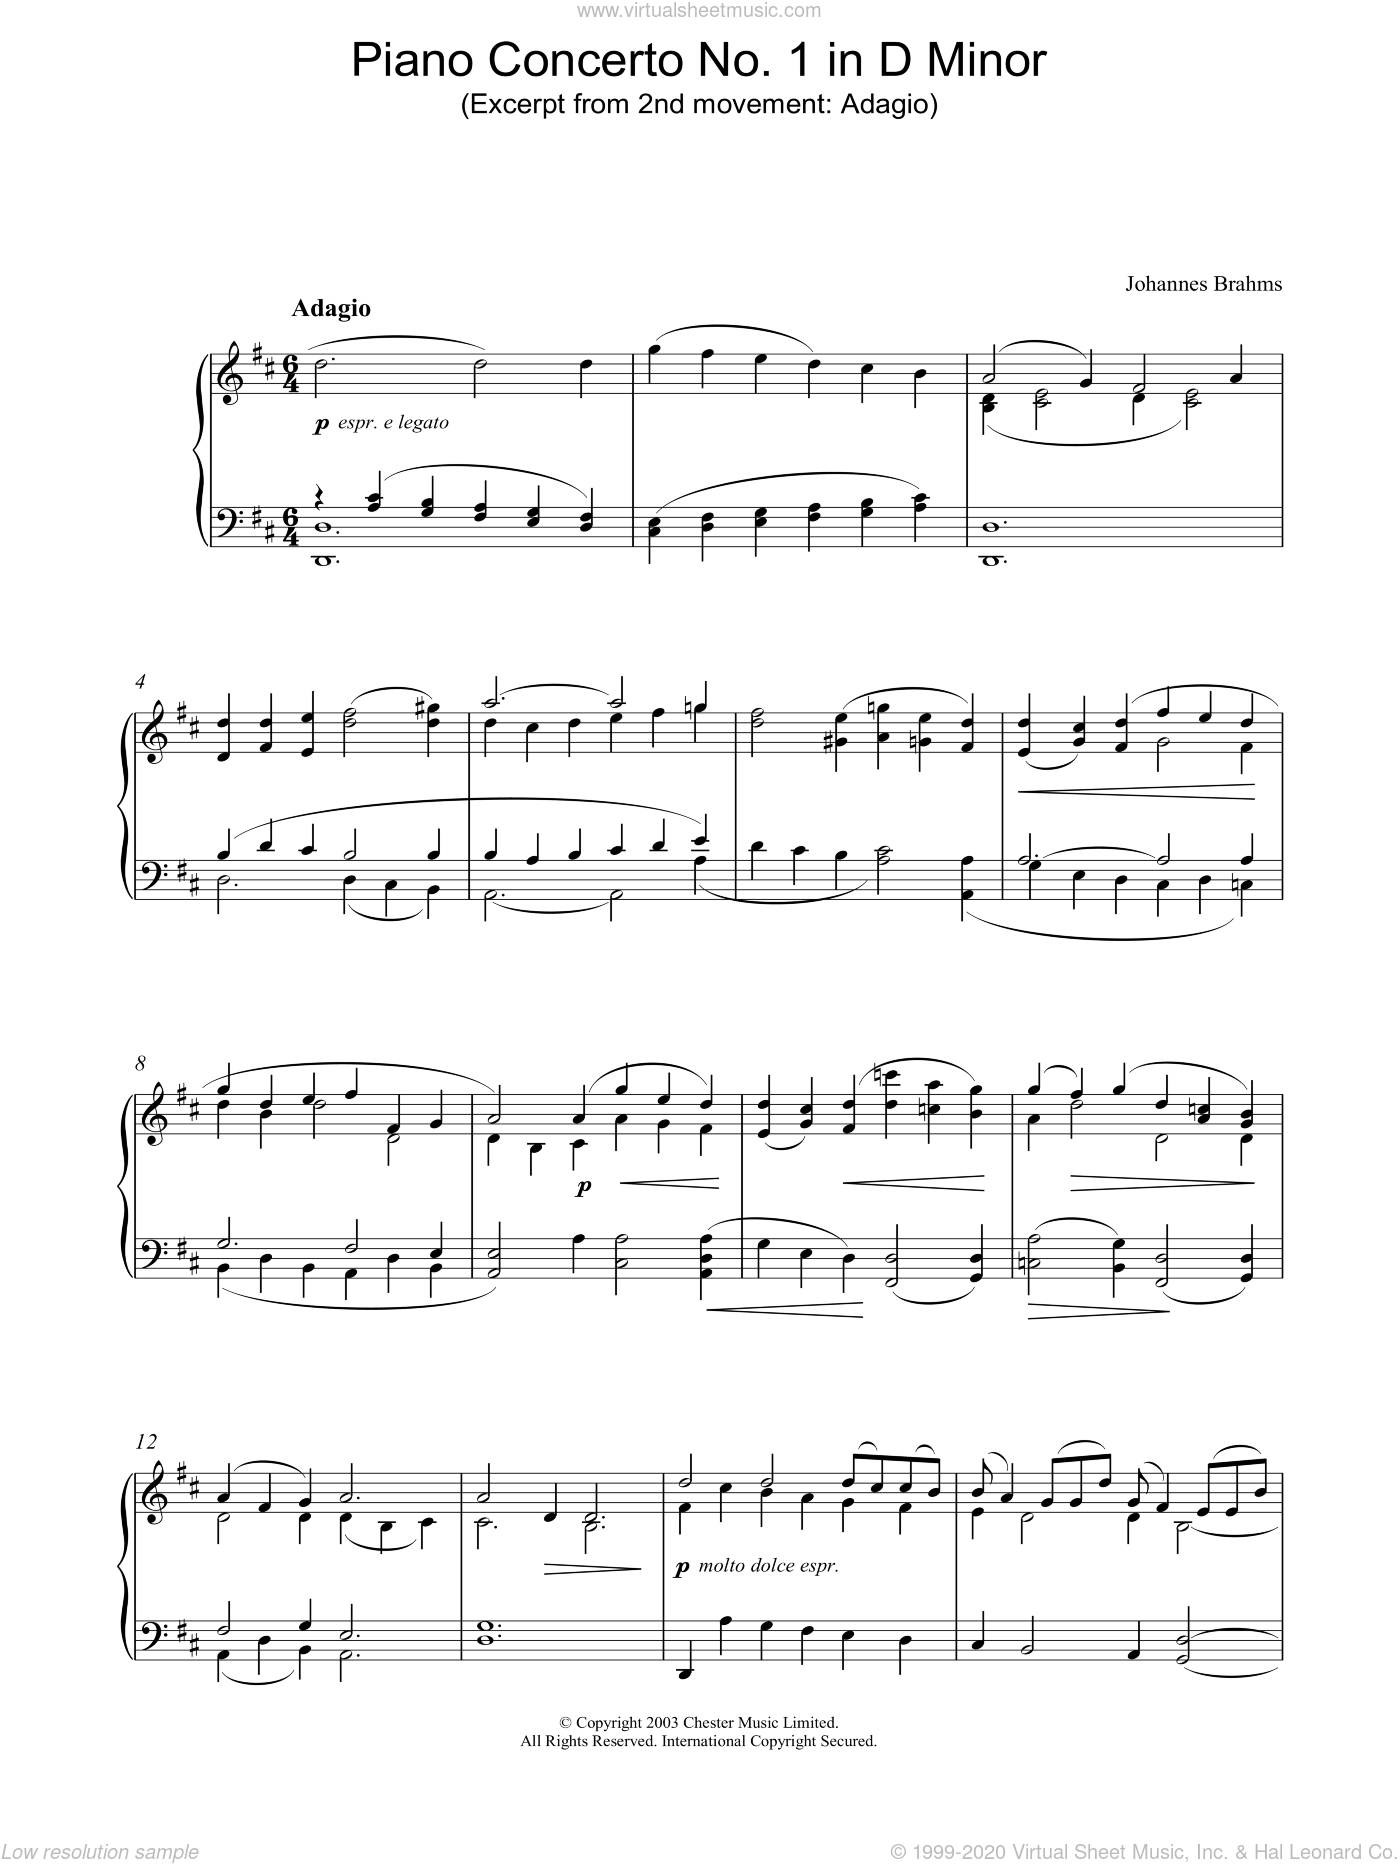 Piano Concerto No. 1 in D Minor (Excerpt from 2nd movement: Adagio) sheet music for piano solo by Johannes Brahms. Score Image Preview.